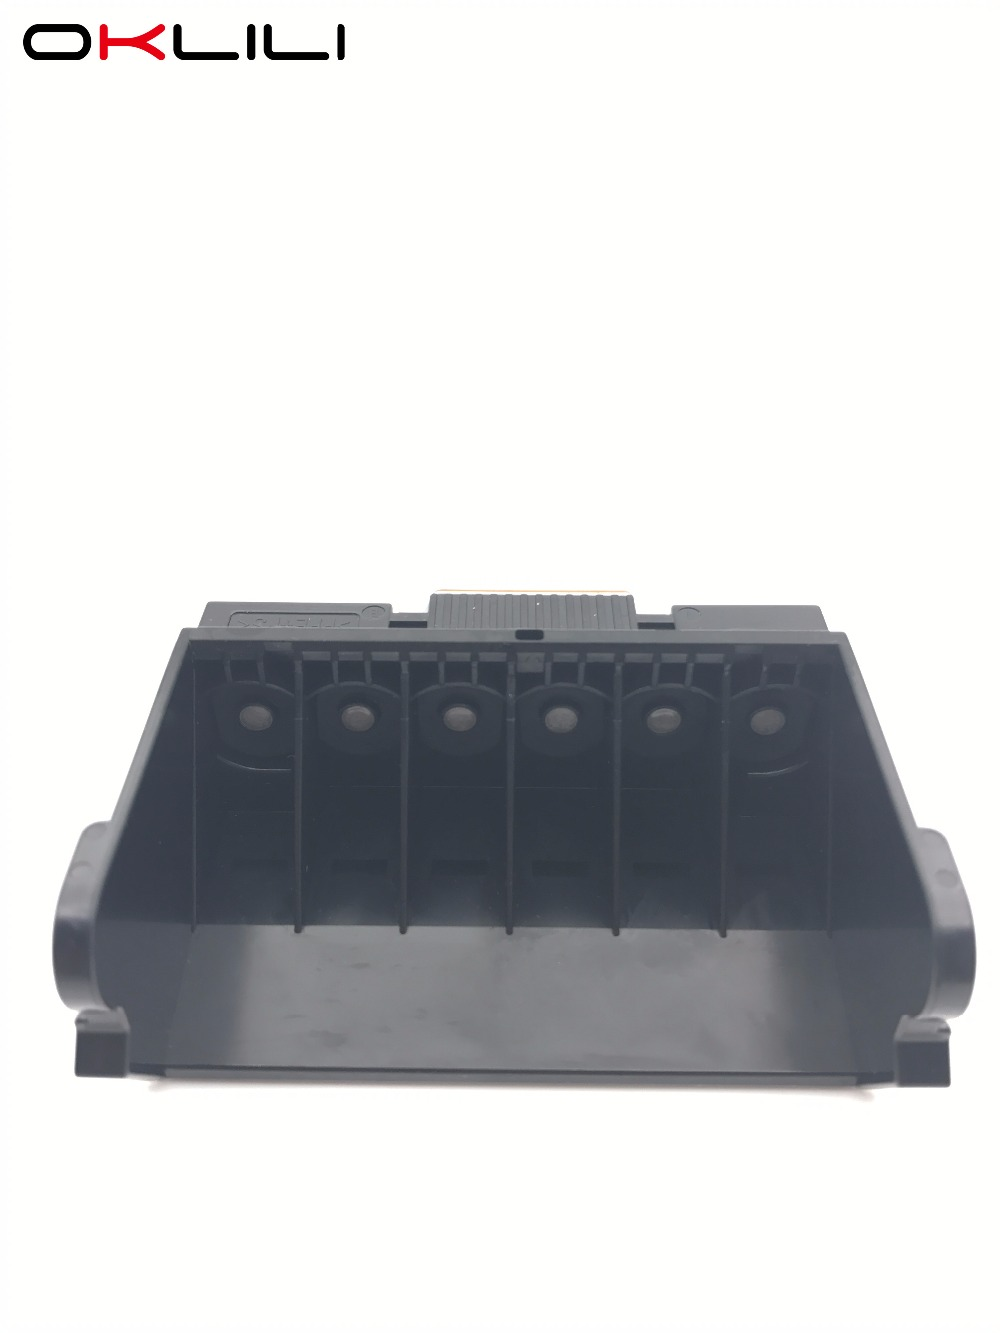 OKLILI ORIGINAL QY6-0063 QY6-0063-000 Printhead Print Head Printer Head for Canon iP6600D iP6700D iP6600 iP6700 original qy6 0075 qy6 0075 000 printhead print head printer head for canon ip5300 mp810 ip4500 mp610 mx850